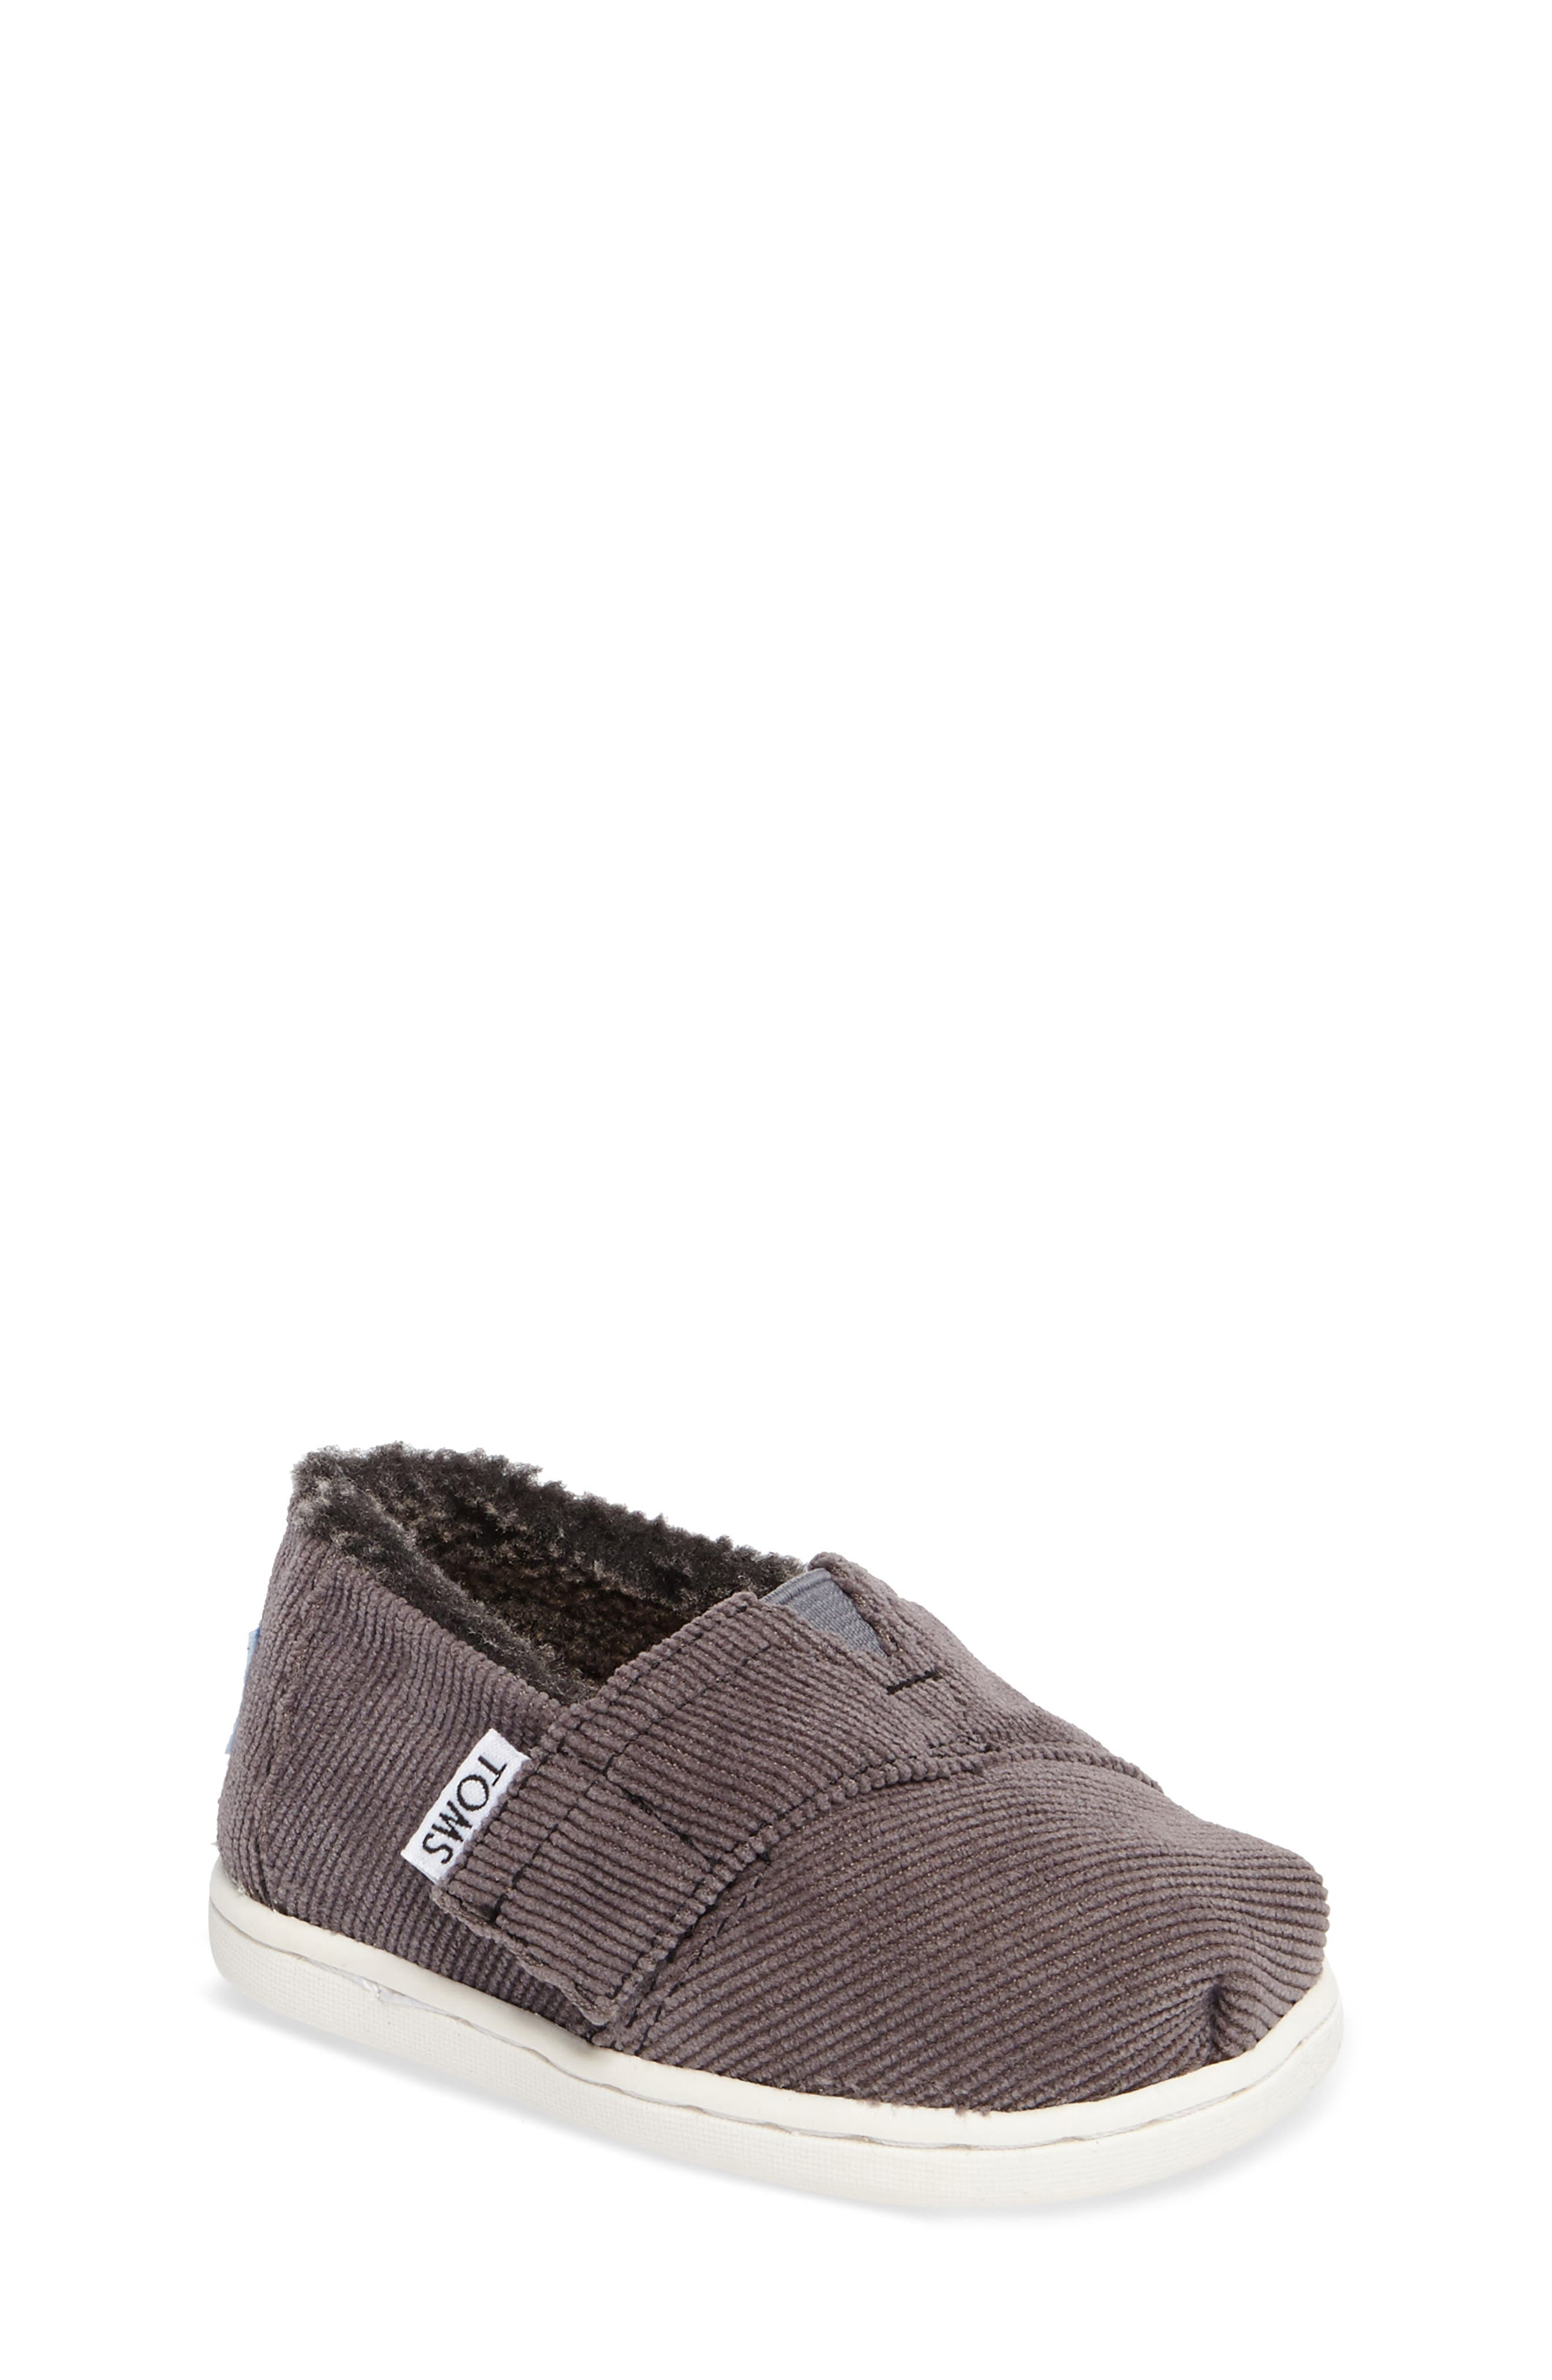 Classic - Tiny Herringbone Faux Shearling Lined Slip-On,                         Main,                         color, 022